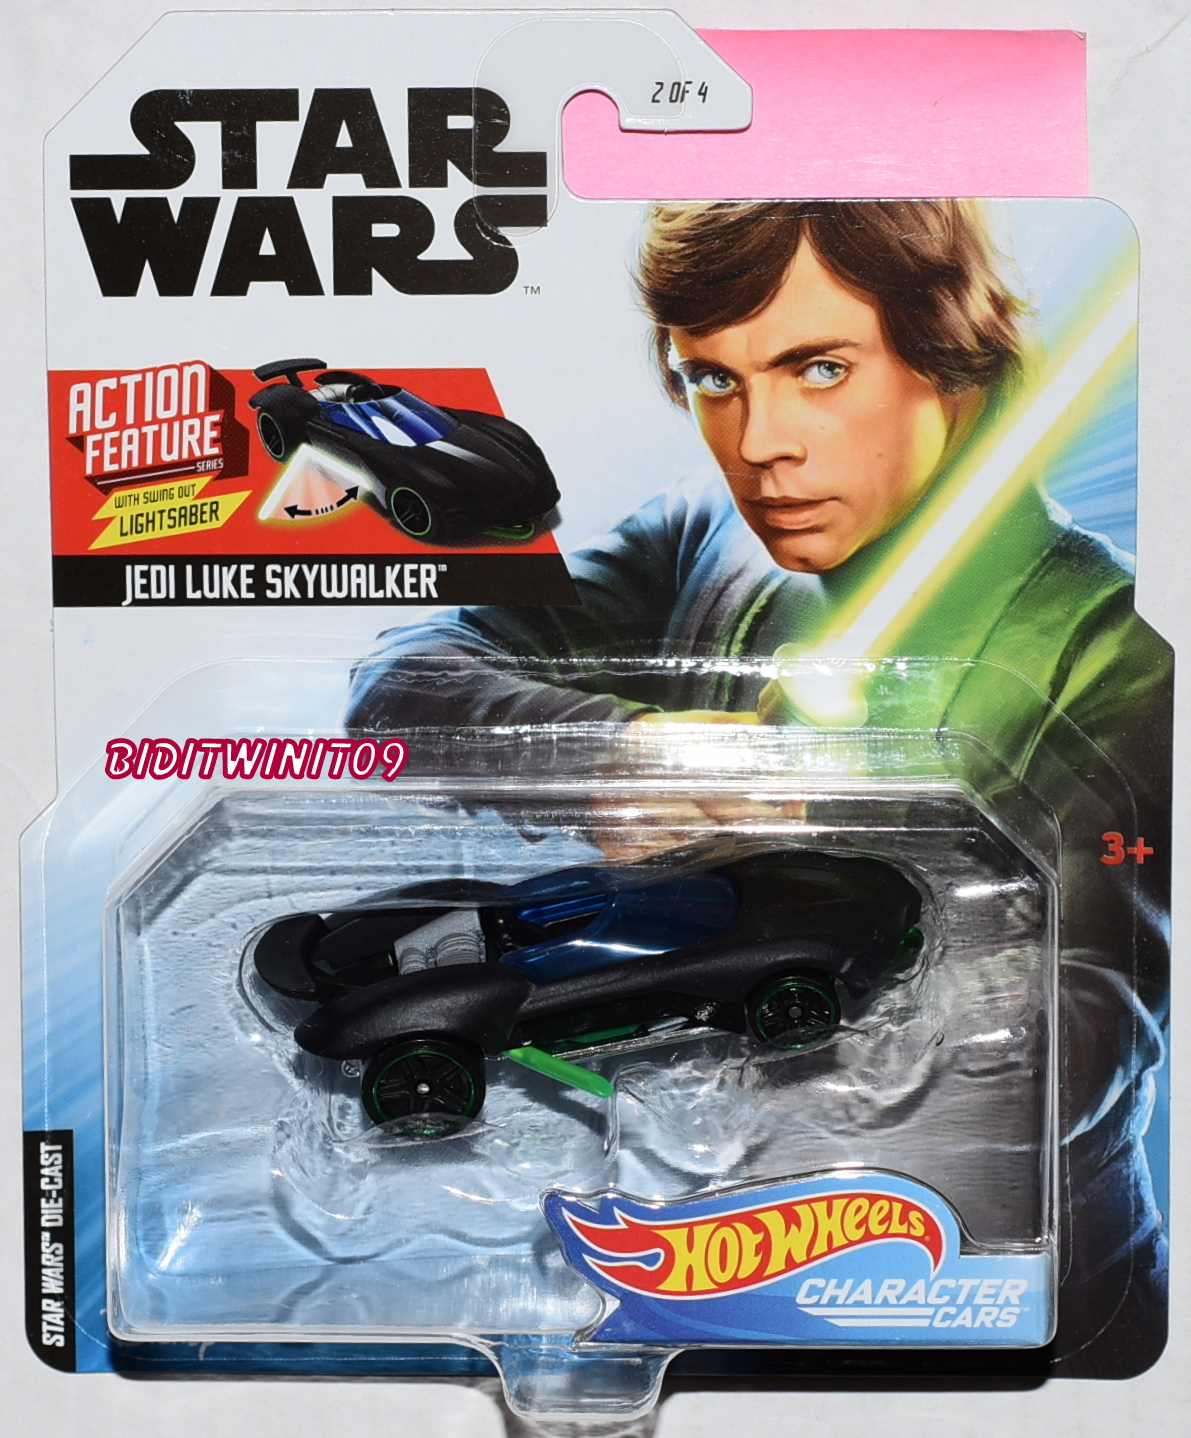 HOT WHEELS STAR WARS JEDI LUKE SKYWALKER ACTION FETURE CHARACTER CARS E+